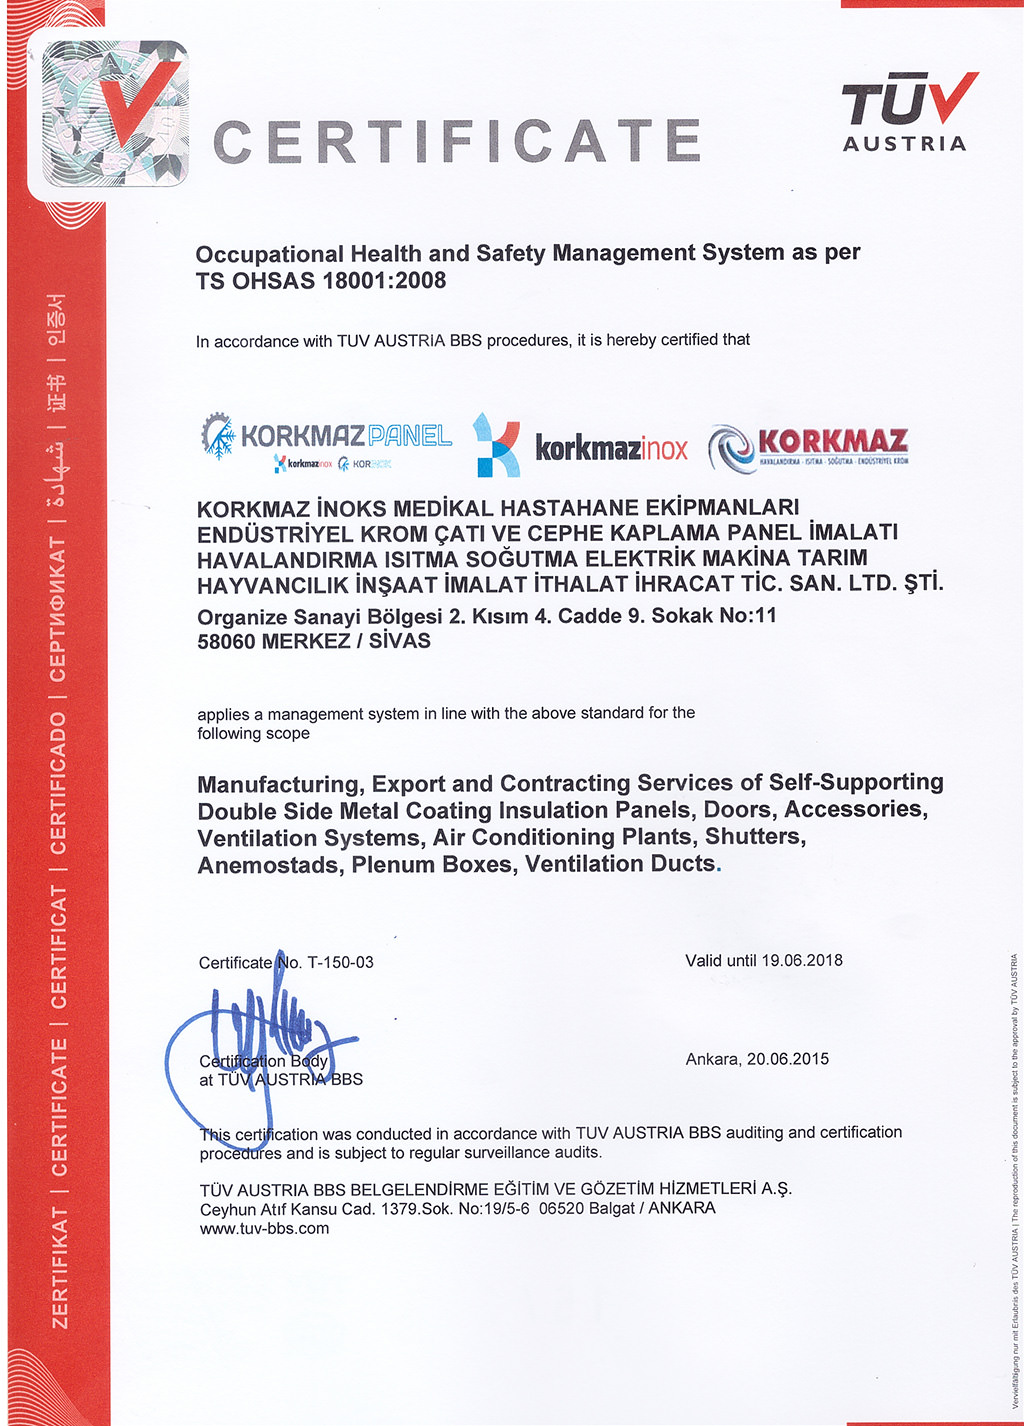 ISO-18001 Certificate